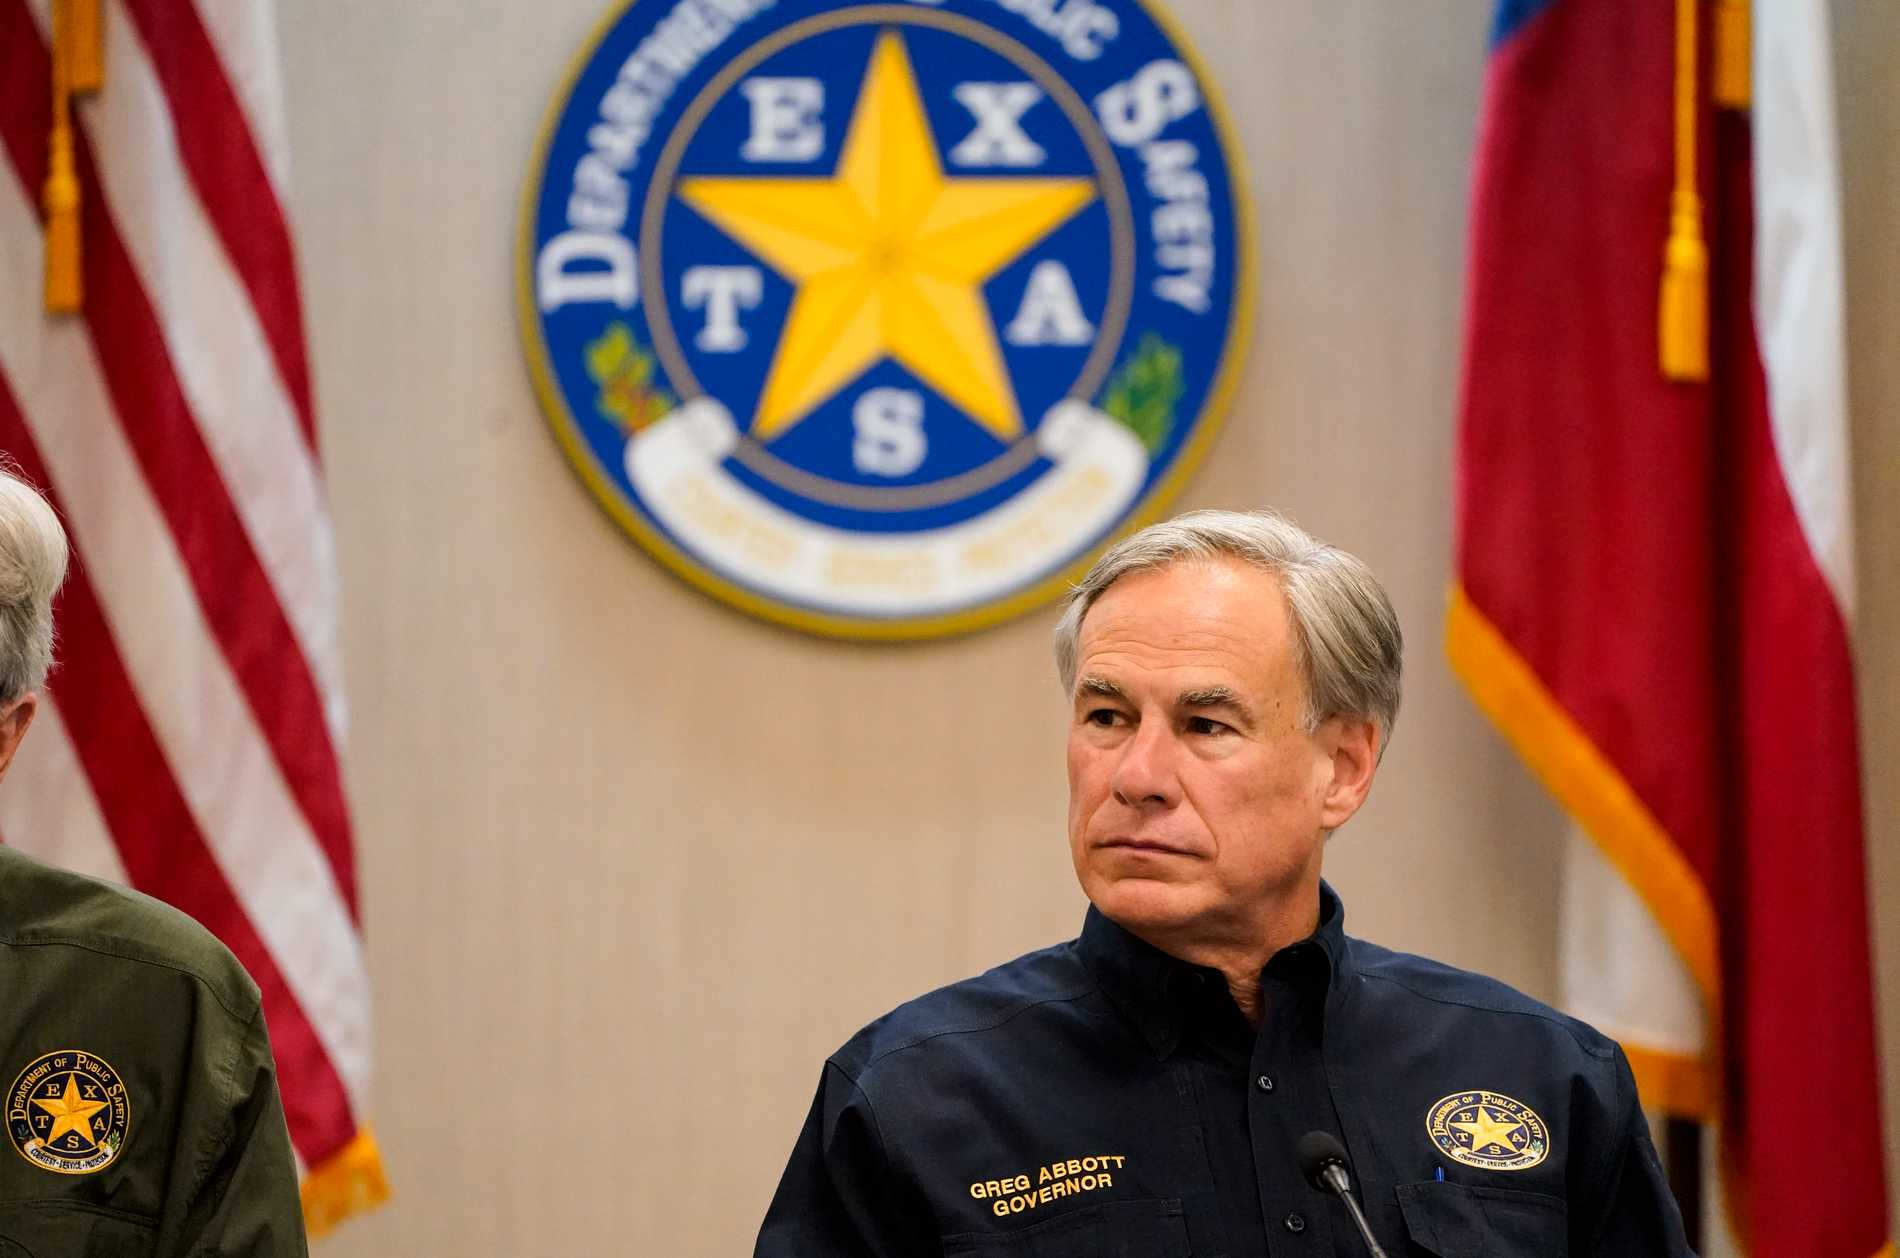 Texas Governor Greg Abbott has imposed restrictions on the transportation of immigrants in the state, angering the Biden government.